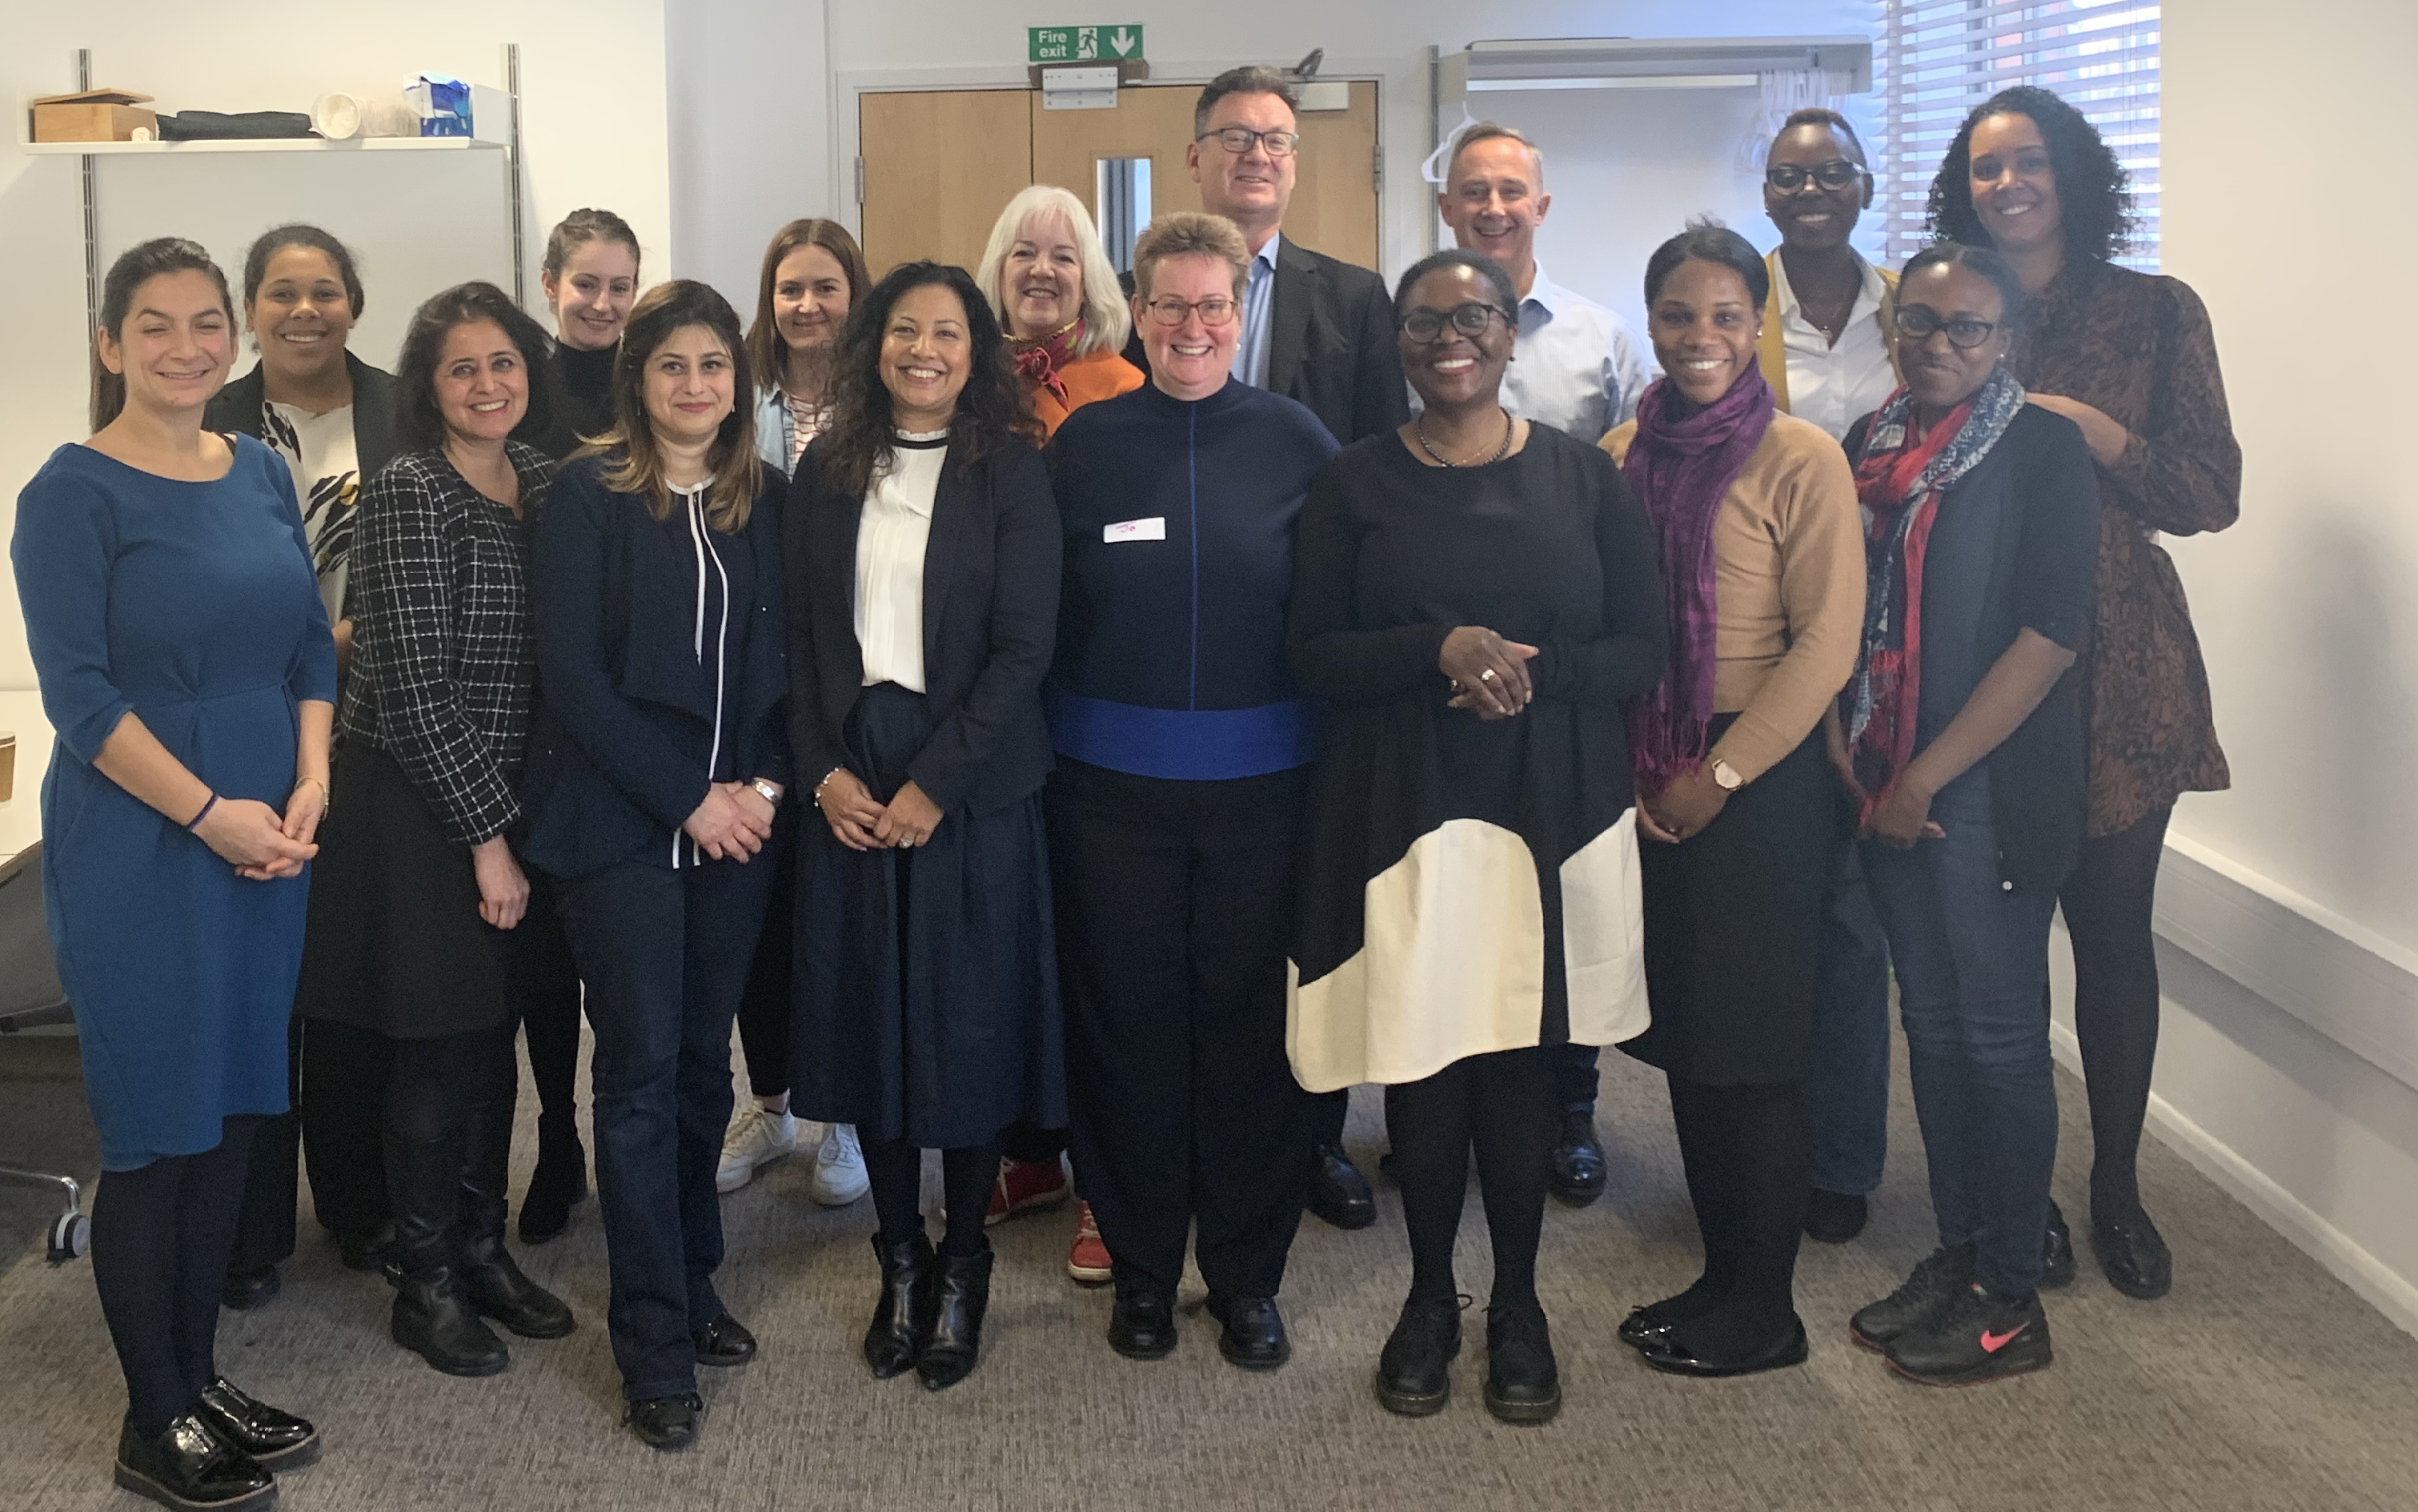 Members of the Equality, Diversity and Inclusion (EDI) Committee pictured at Resolution HQ.